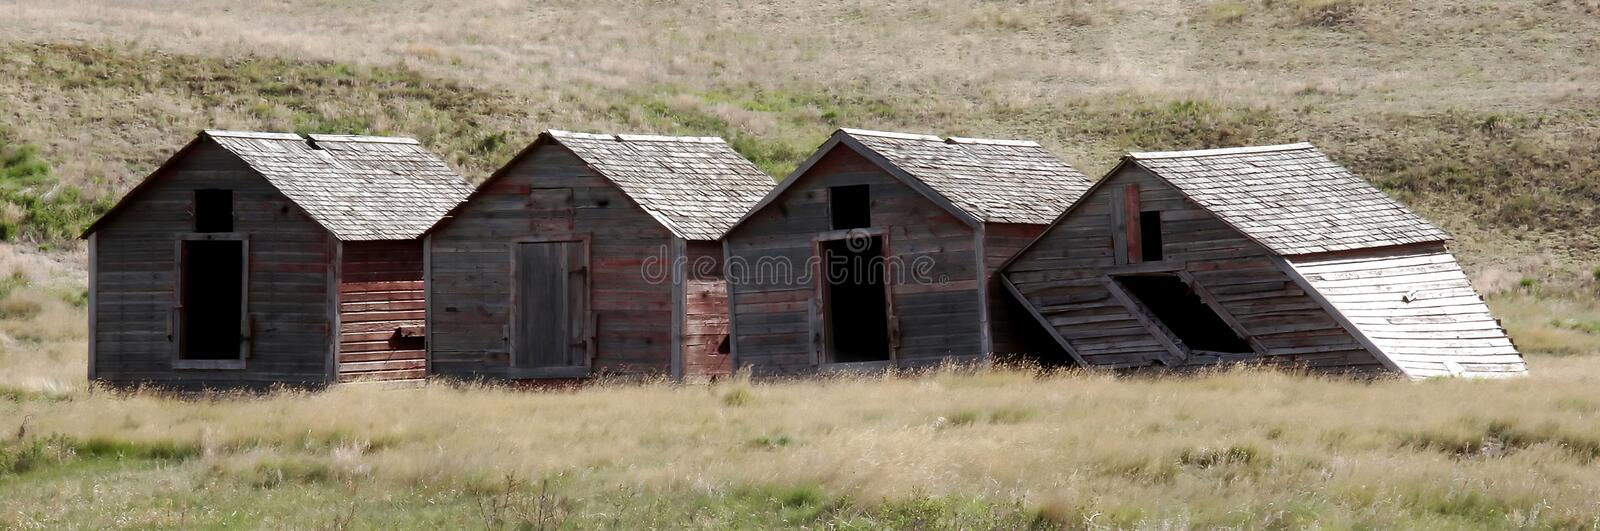 Four Small Buildings Stock Photo